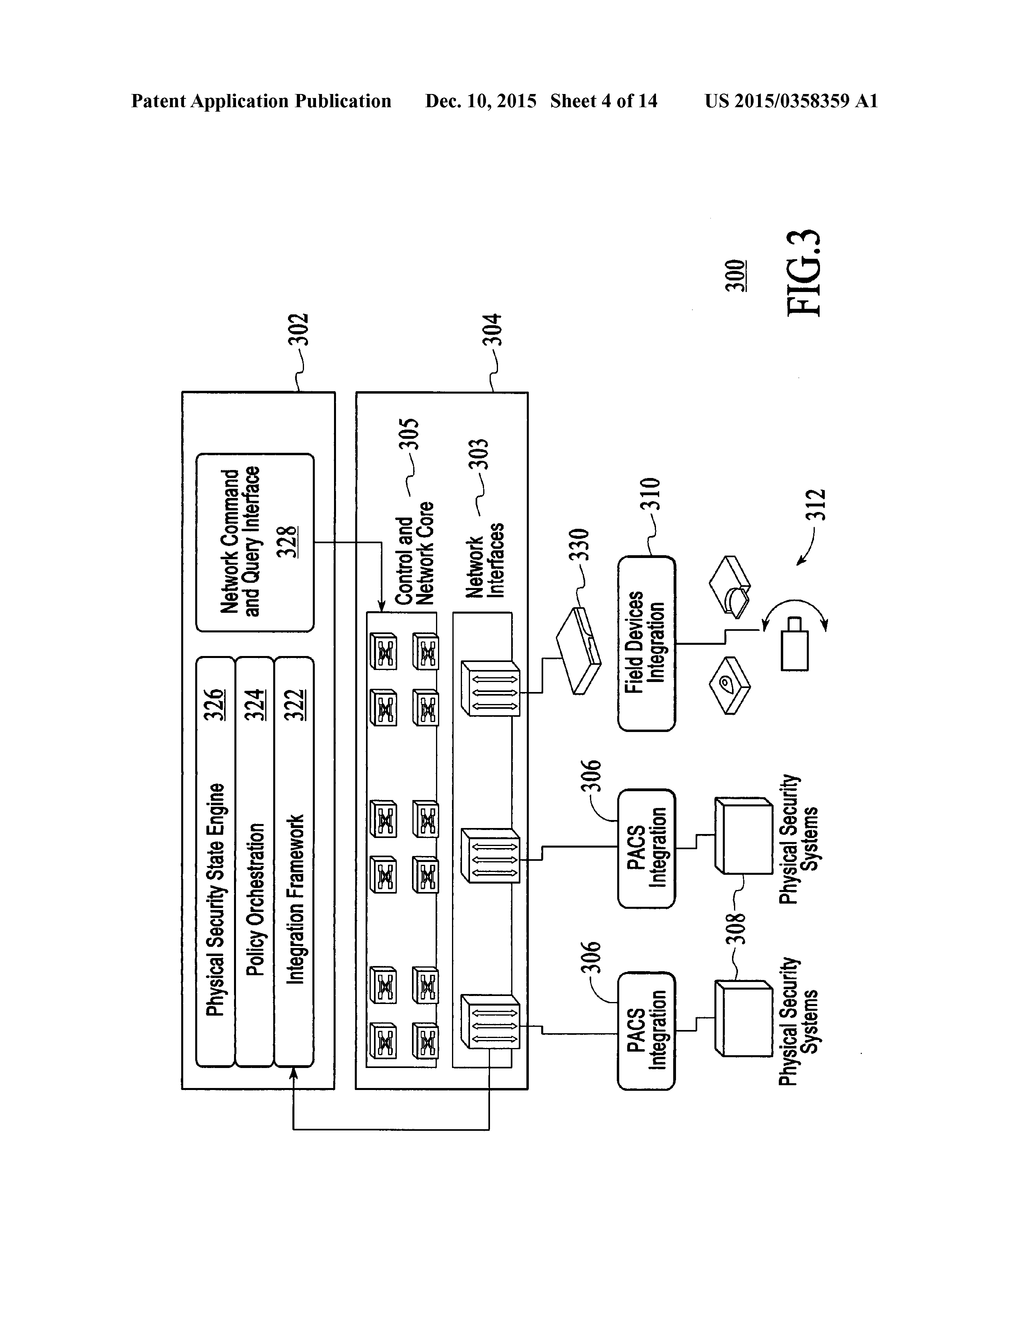 Policy Based Physical Security System For Restricting Access To Diagram Computer Resources And Data Flow Through Network Equipment Schematic Image